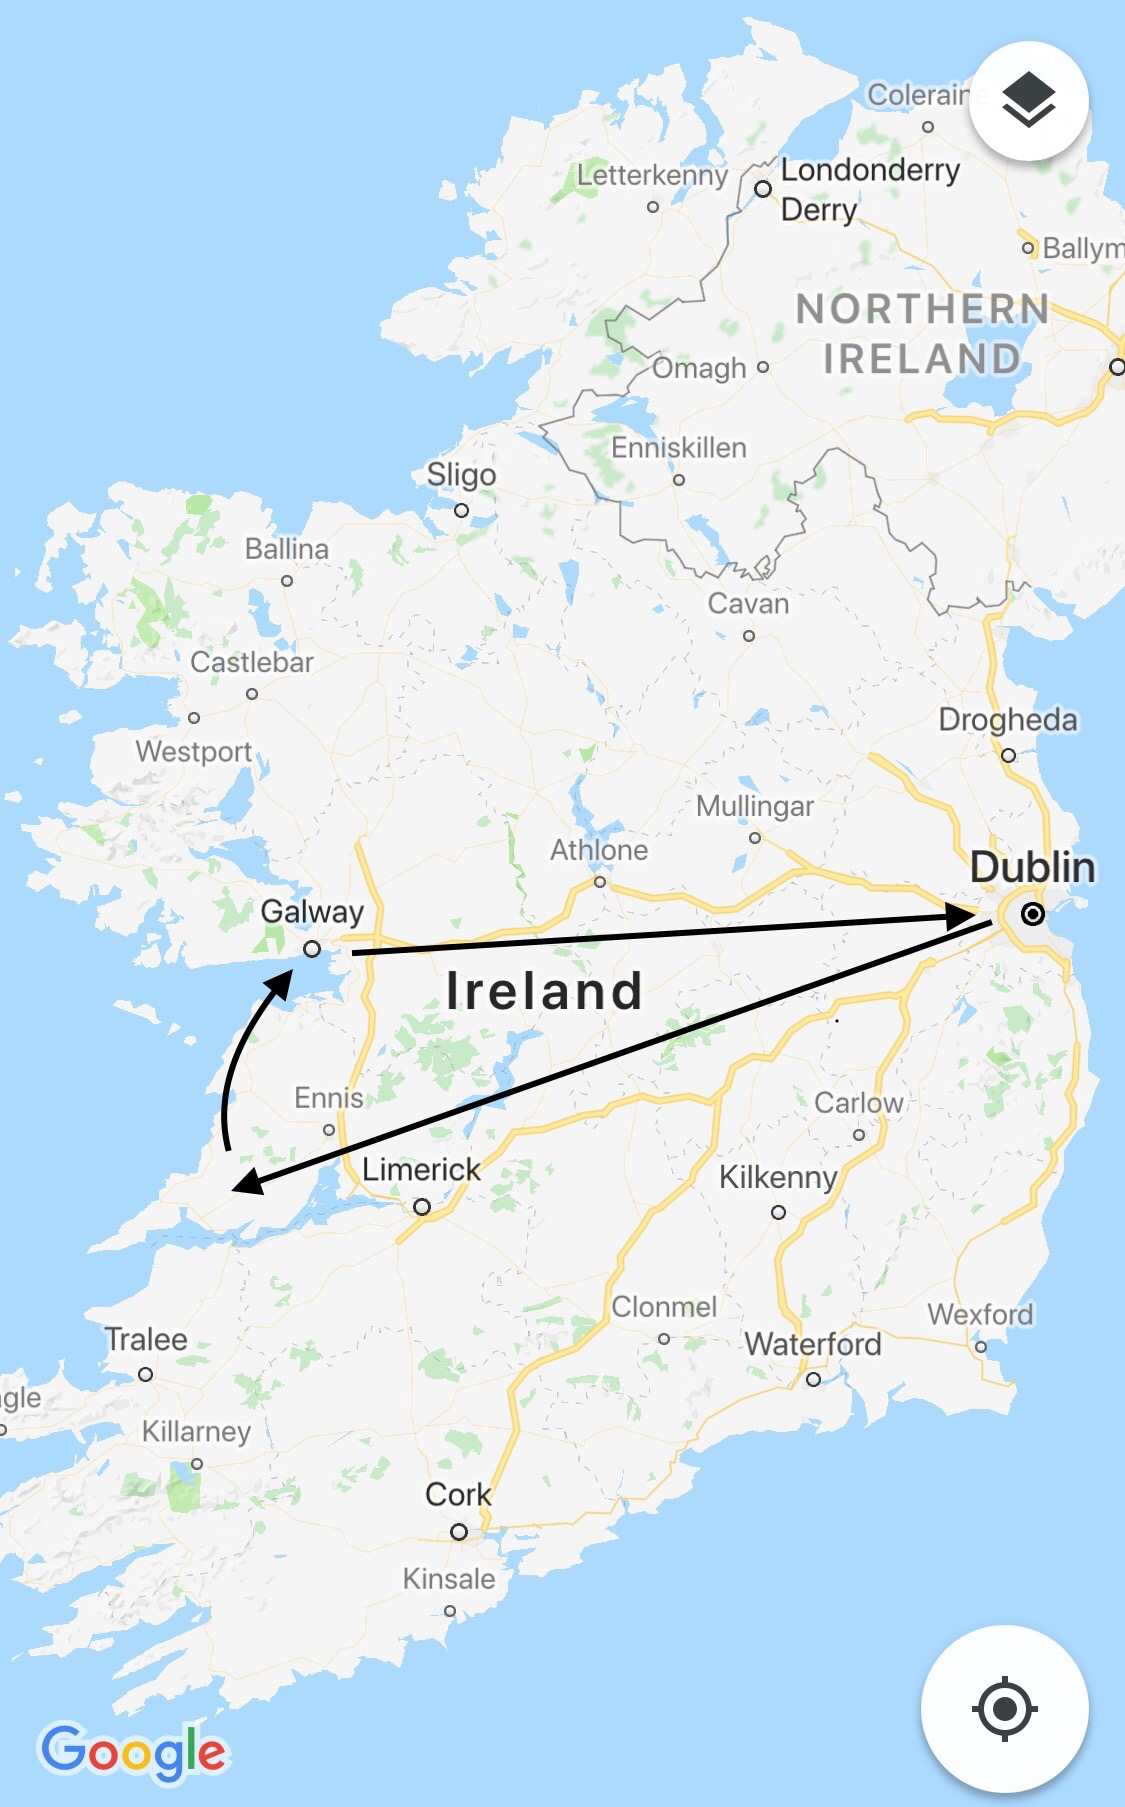 - Day 2 on the Emerald Isle was spent on a tour of the western side of Ireland. From Dublin to the Cliffs of Moher to Galway,the loop we made was a classic trek across the country, and took no more than 3.5 hours in either direction.